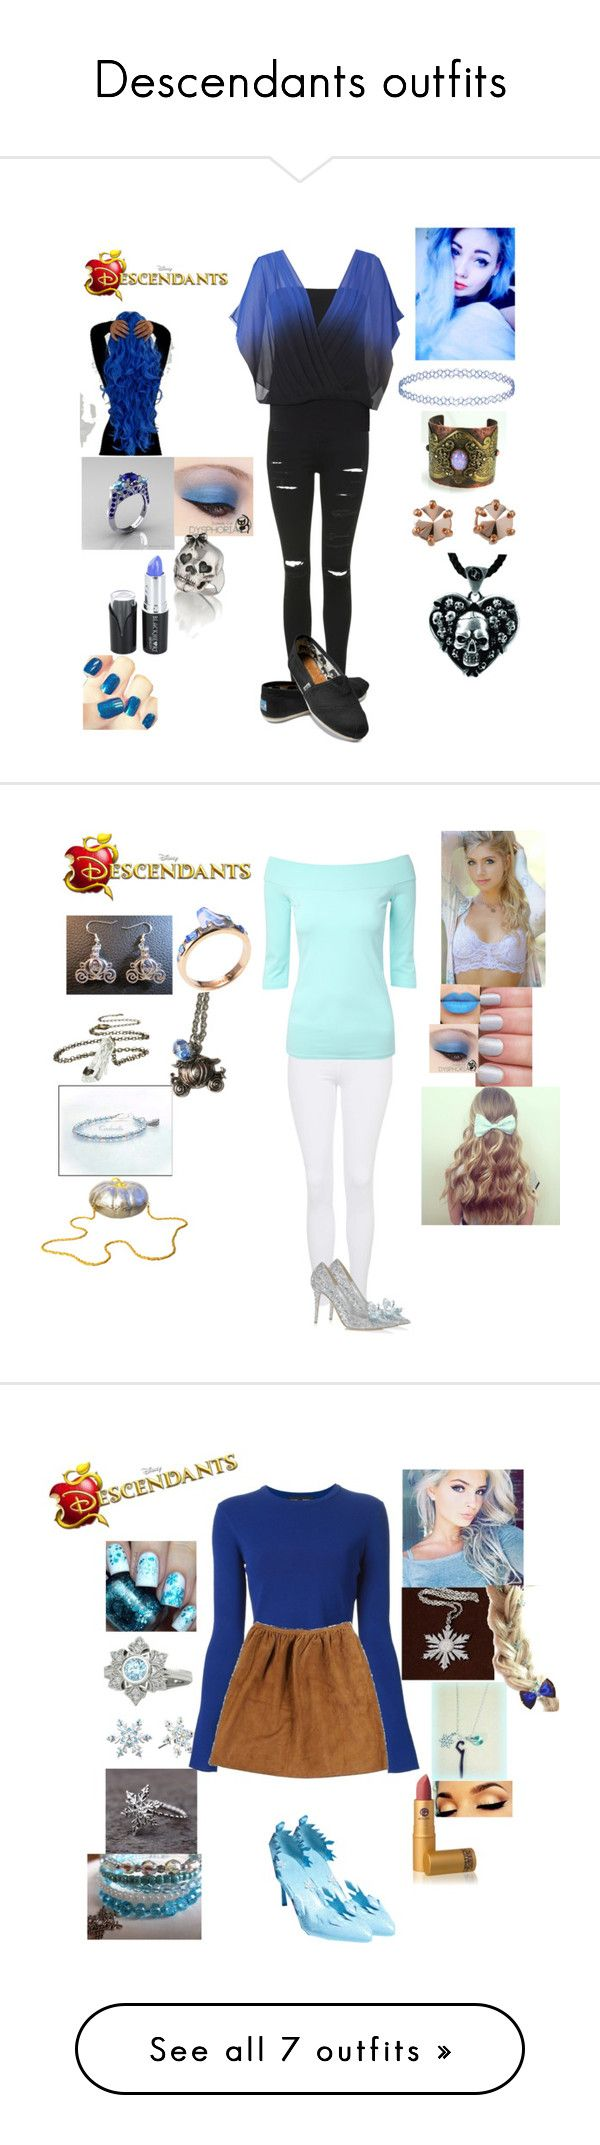 """Descendants outfits"" by maxinepotter ❤ liked on Polyvore featuring Topshop, Coast, TOMS, Marc by Marc Jacobs, Sheeva, disney, OC, Descendants, Jimmy Choo and Disney"